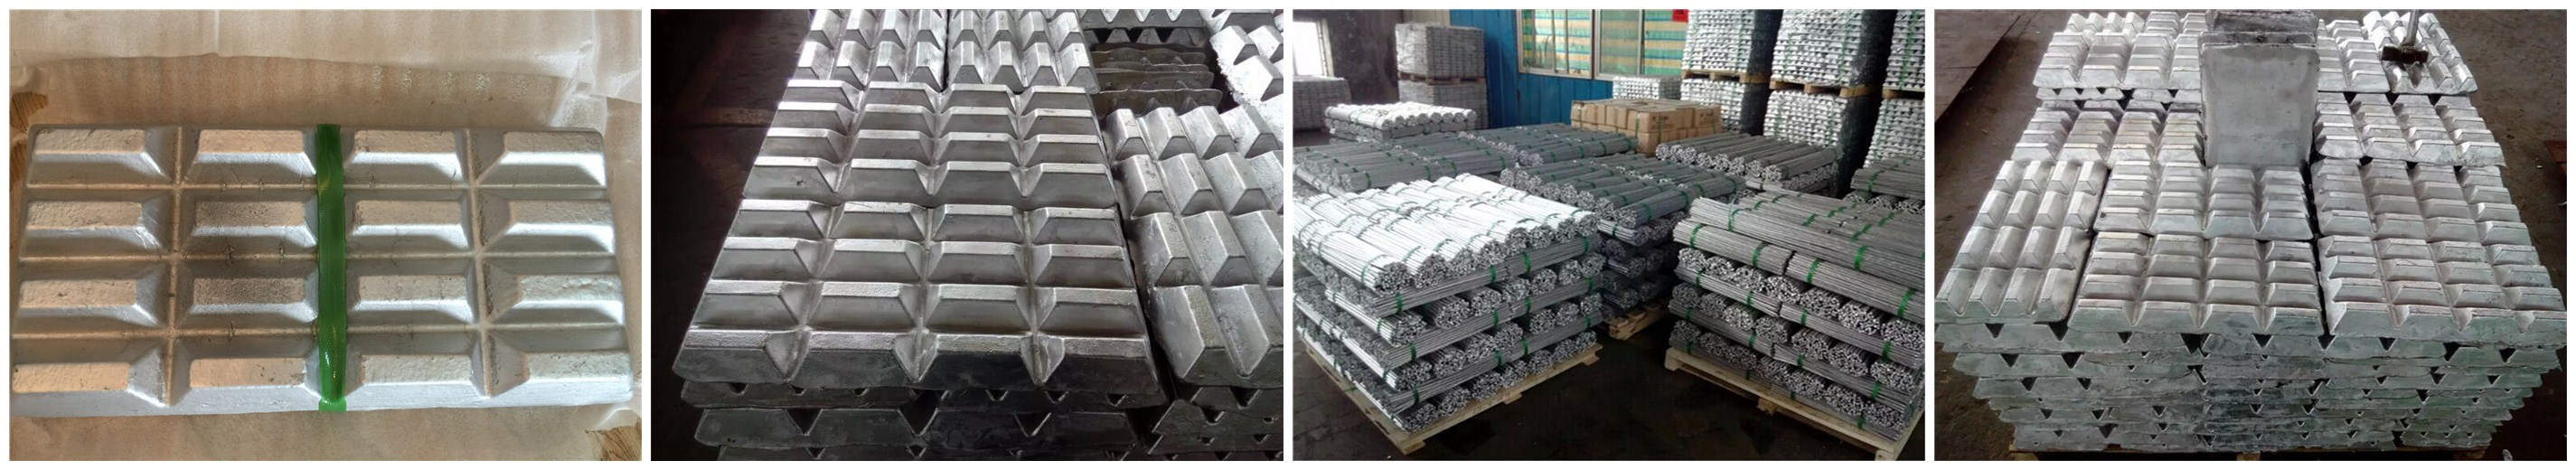 Aluminum Master Alloy with AlZr,AlSr,AlCu,AlTi Al-rare earth alloy